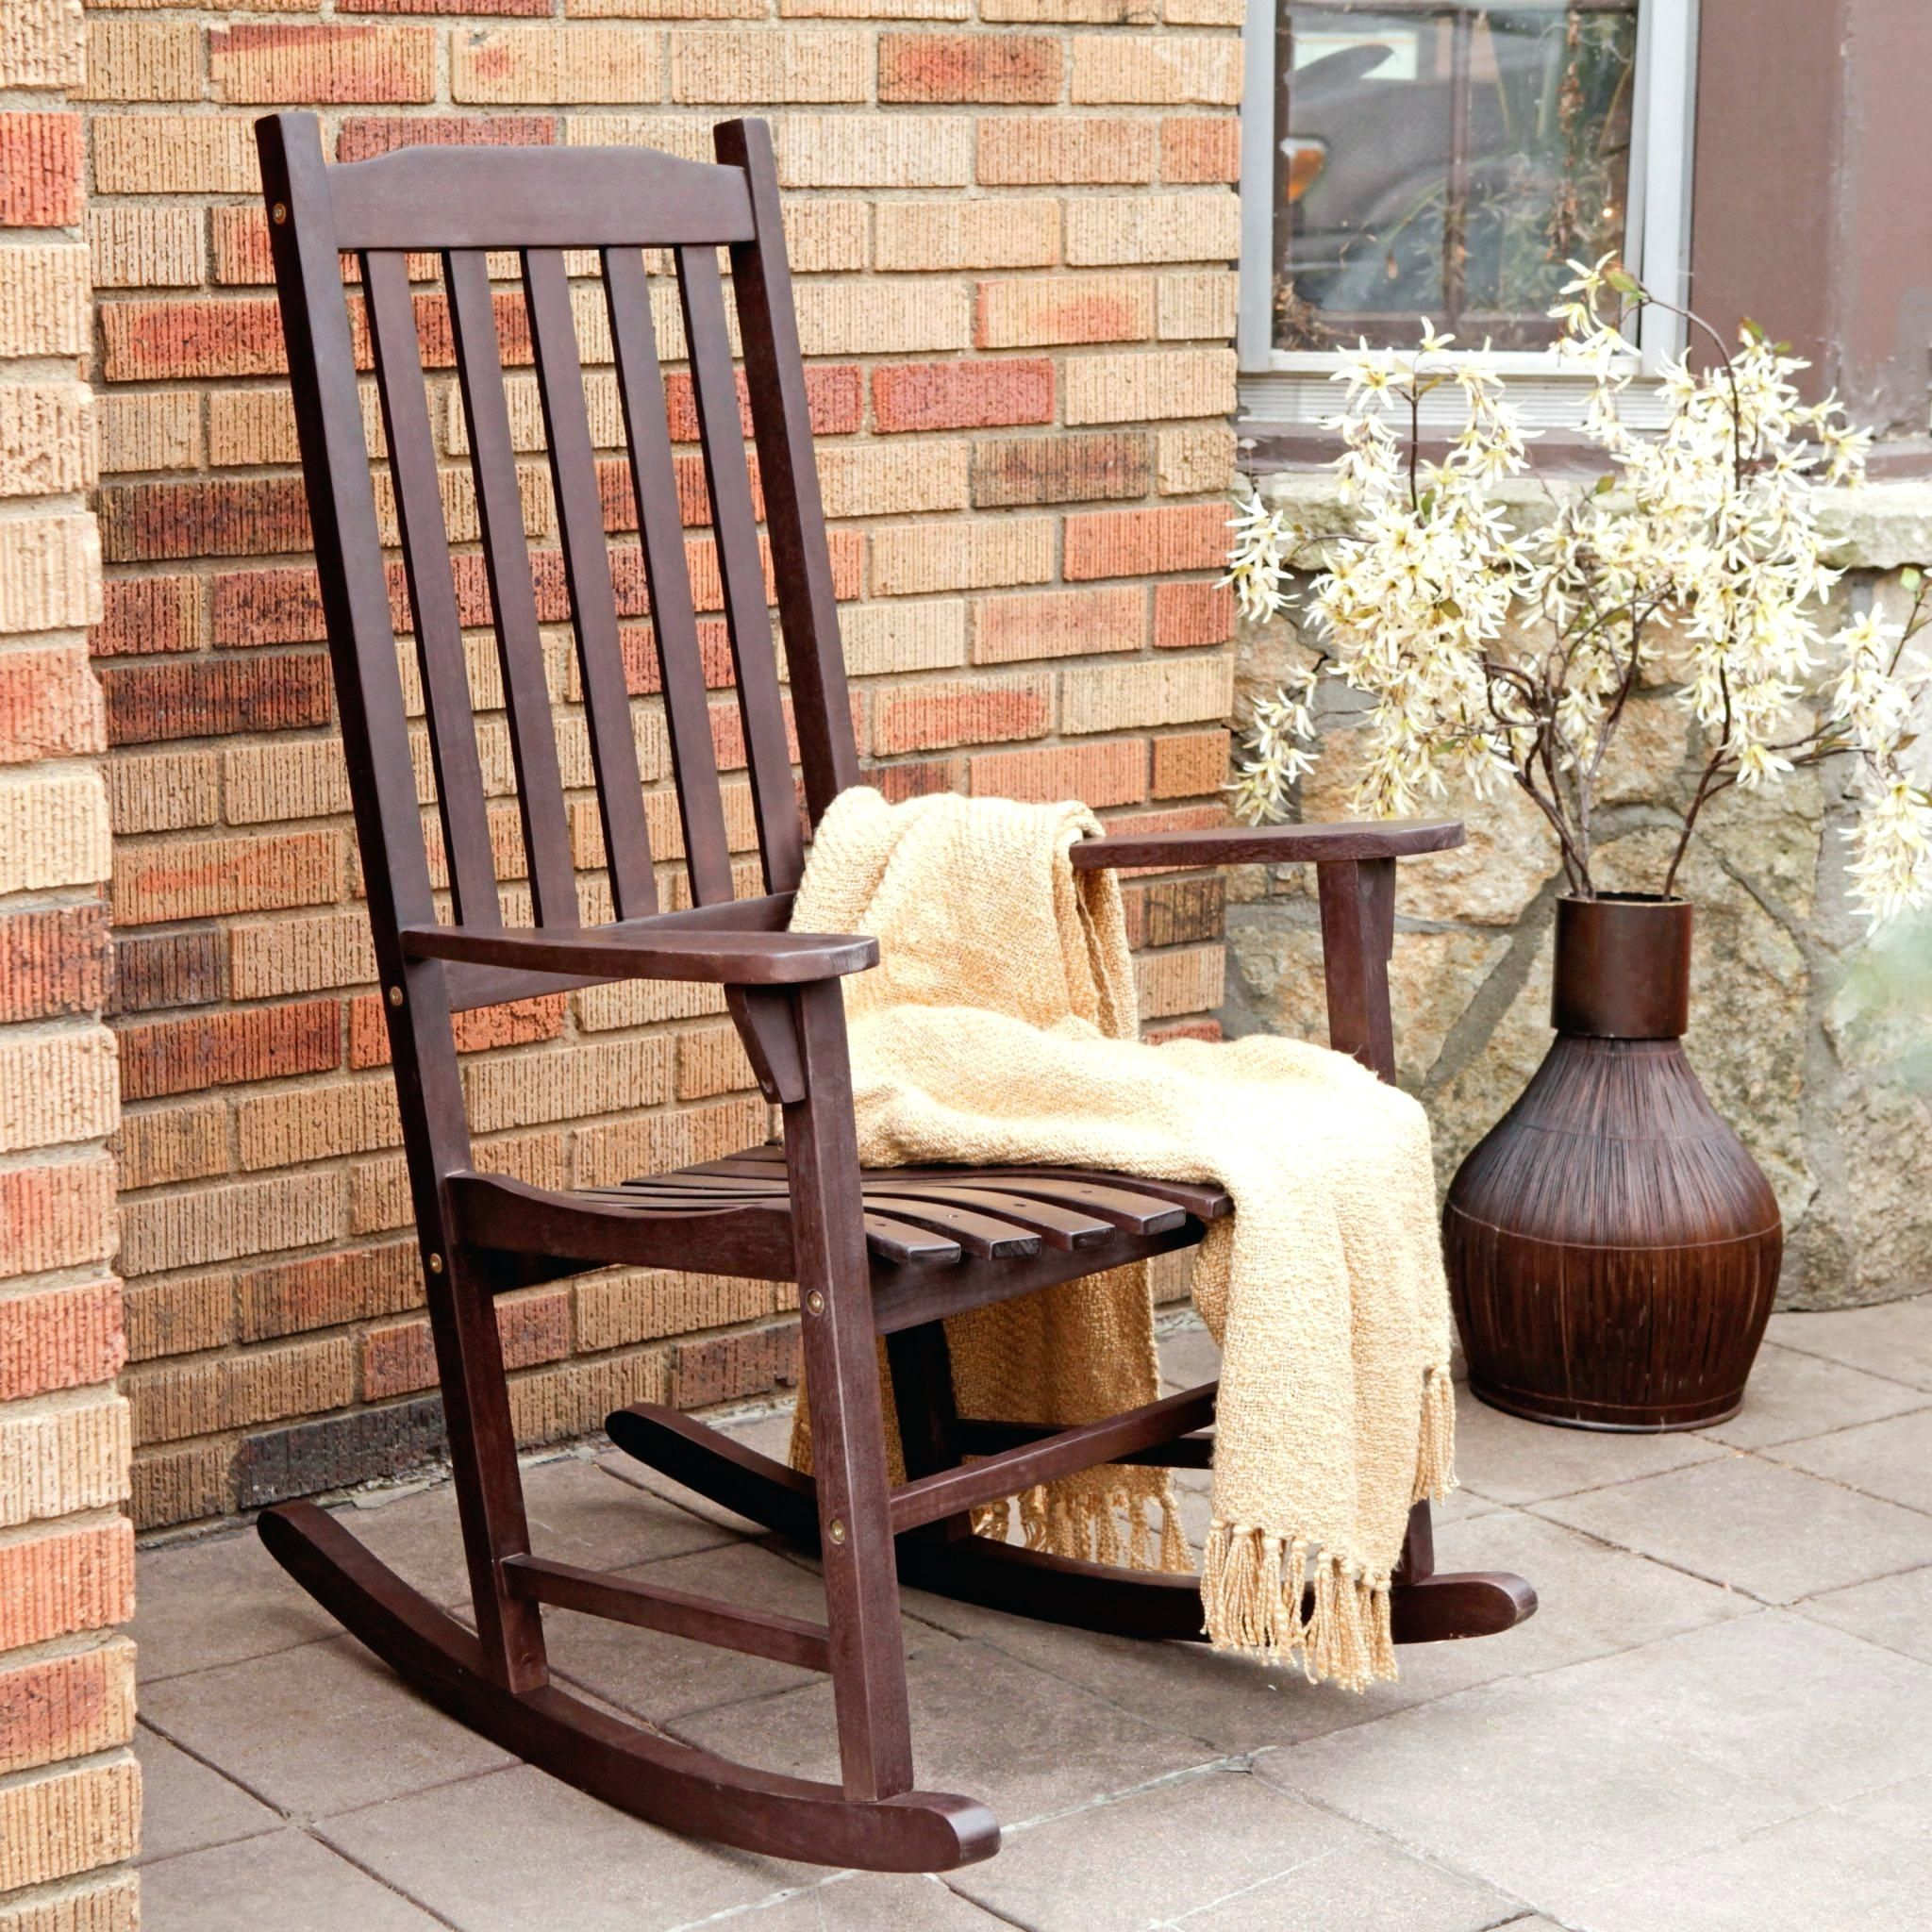 Cracker Barrel Chair Covers Rocking chair porch, Outdoor